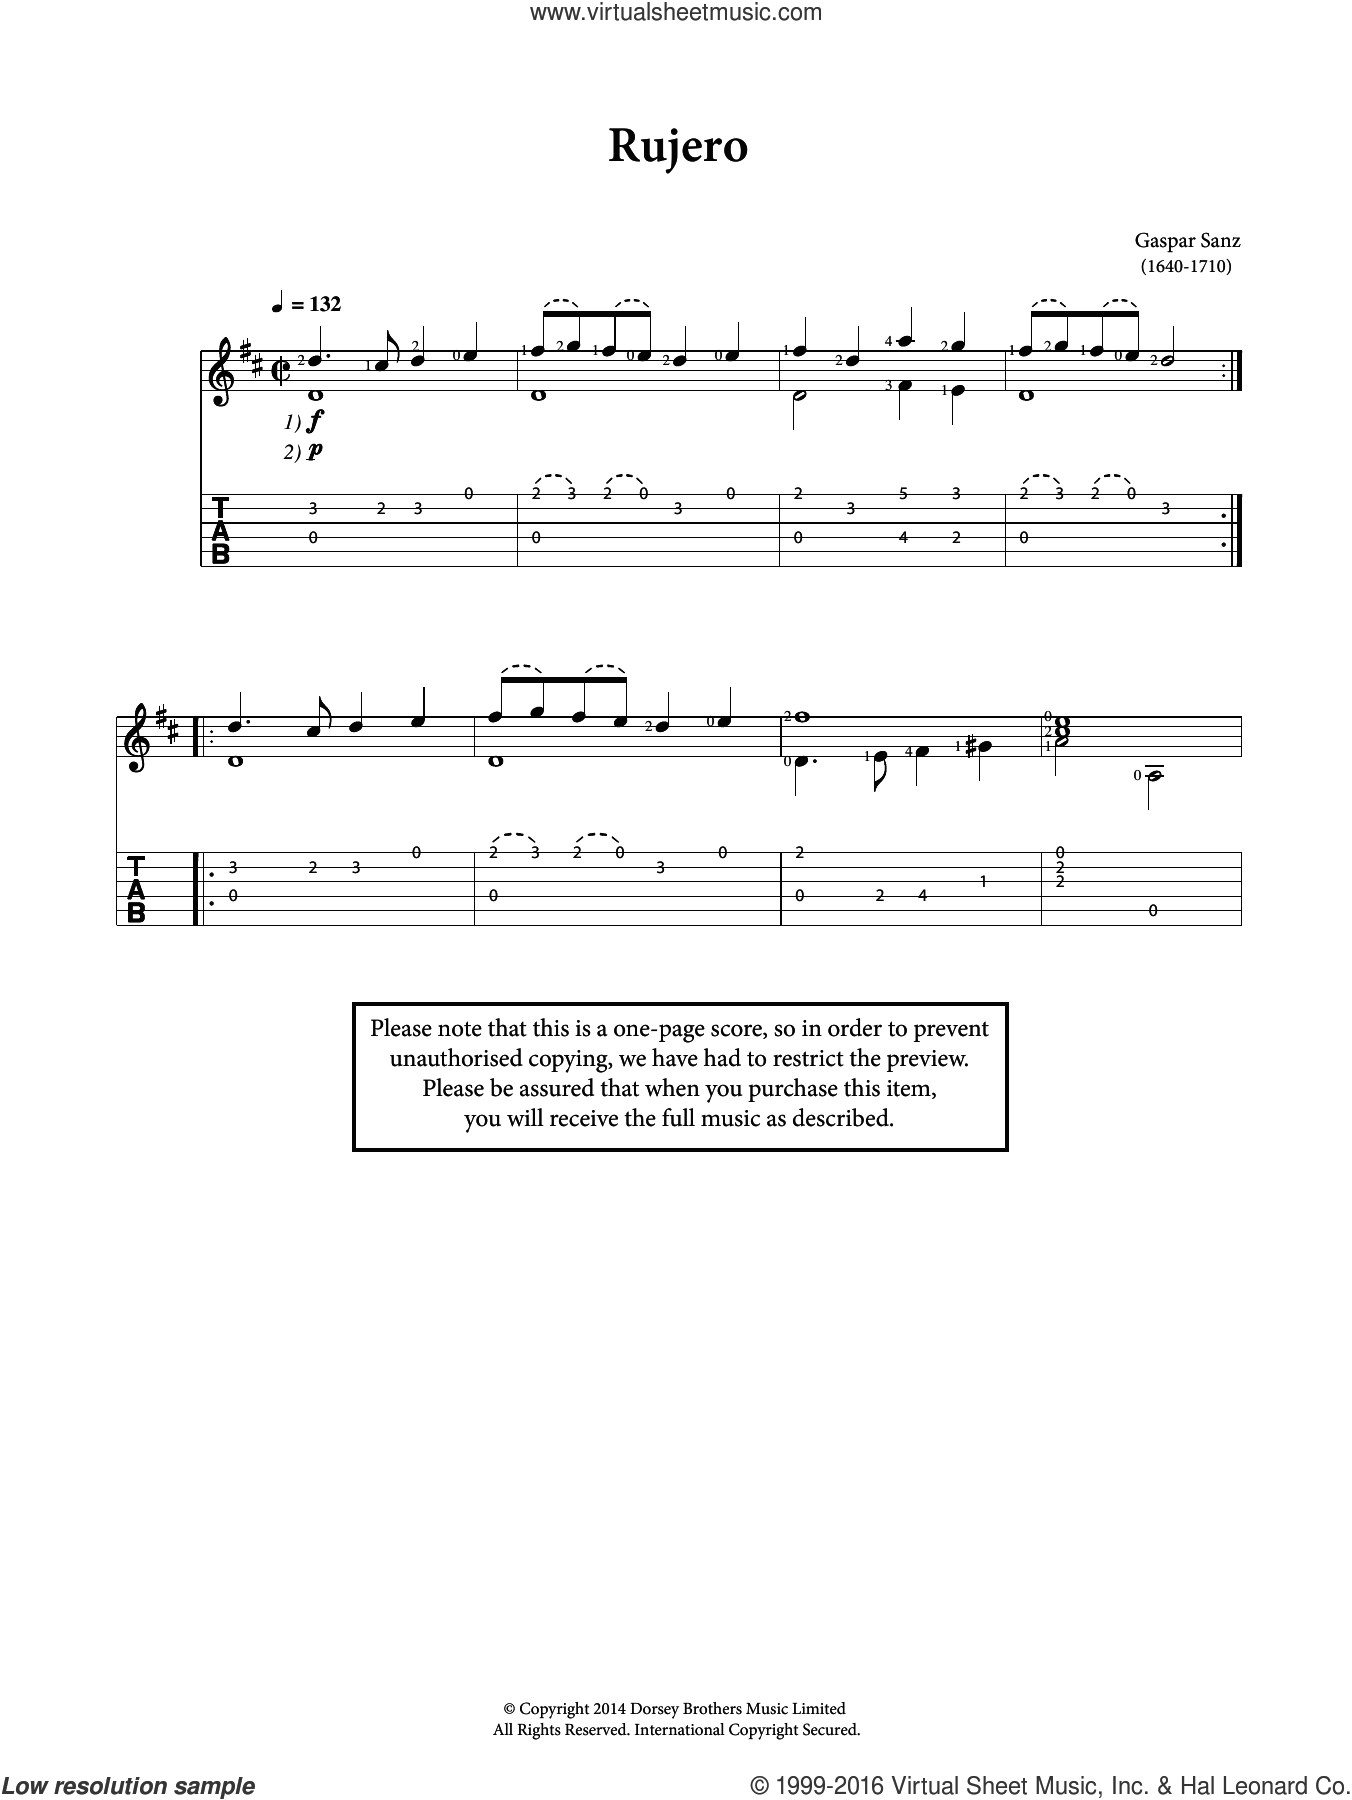 Rujero sheet music for guitar solo (chords) by Gaspar Sanz, classical score, easy guitar (chords)